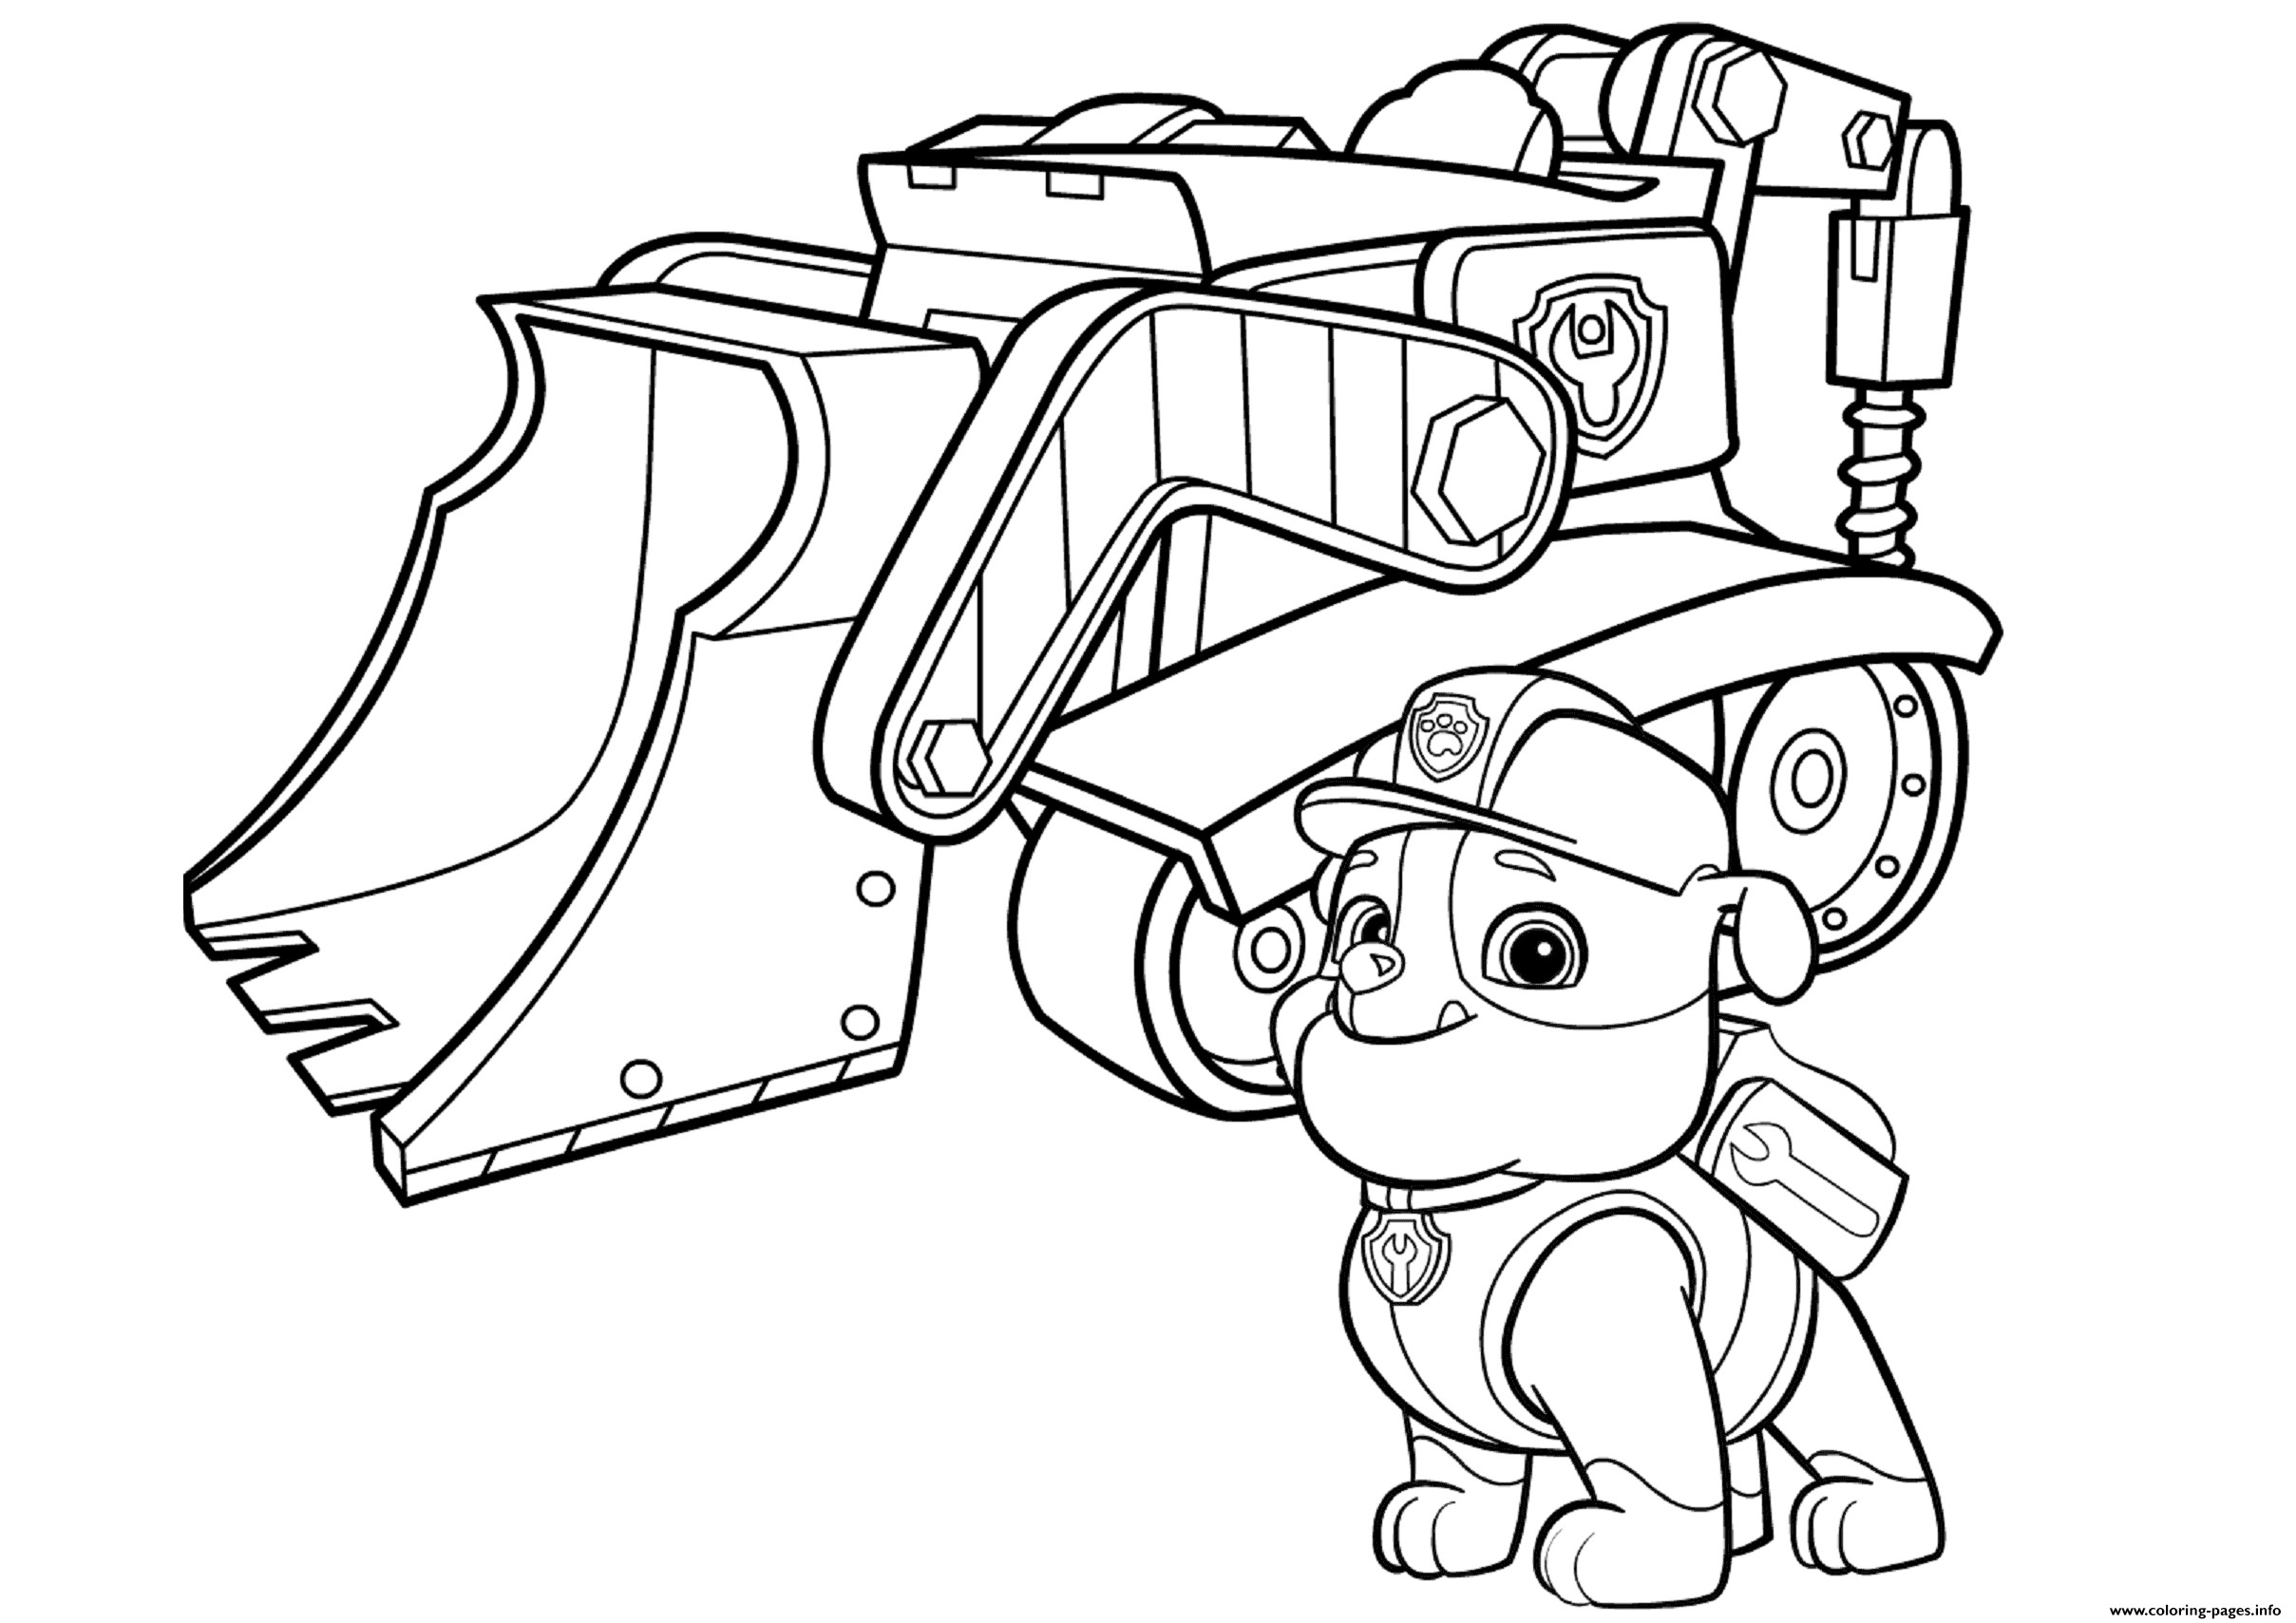 2417x1709 Best Of Paw Patrol Tracker Coloring Page Leri Co Fine Fiscalreform